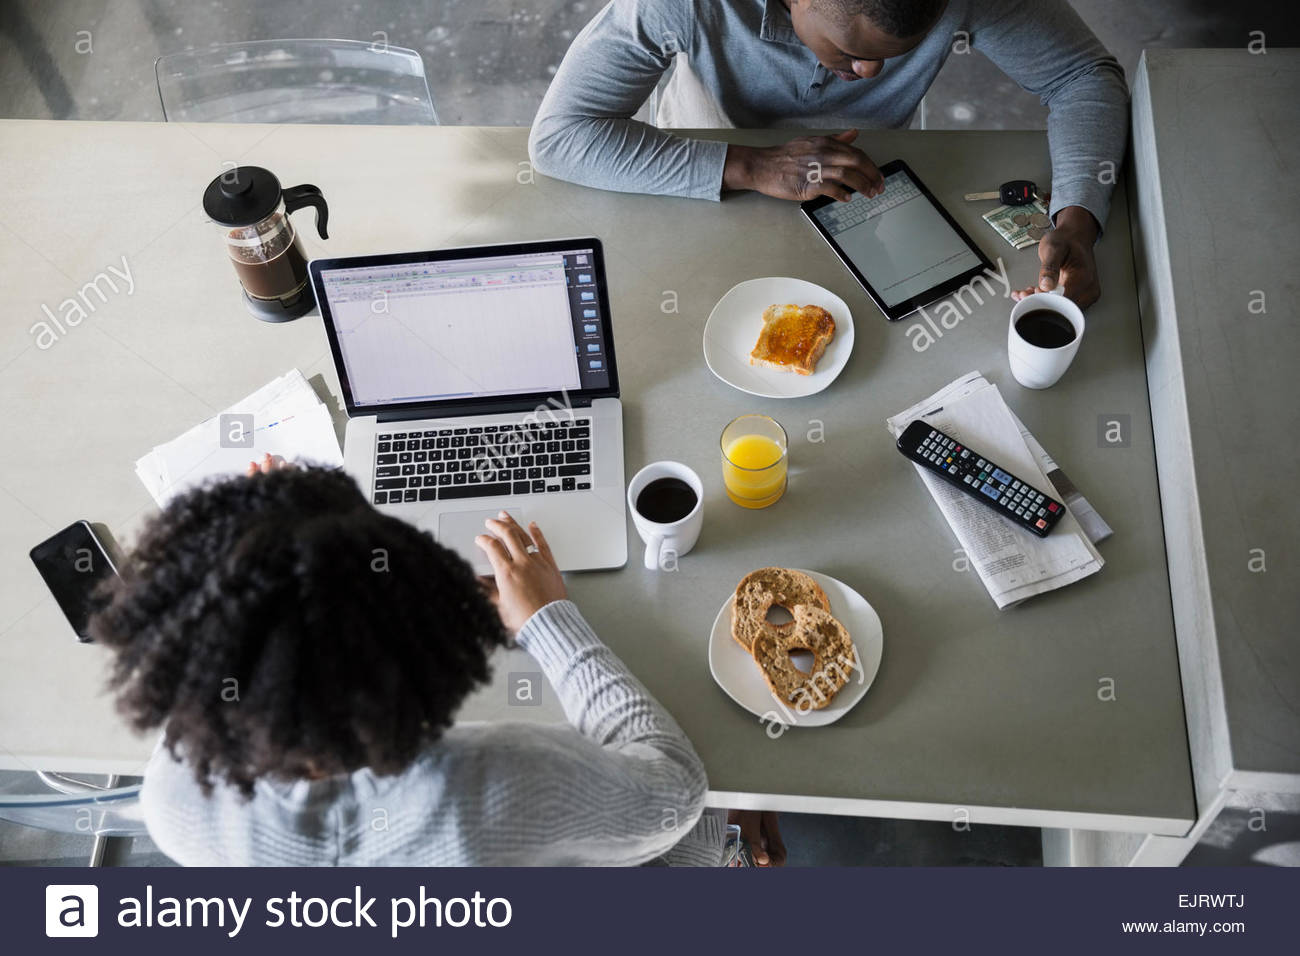 Overhead view of couple with technology in kitchen - Stock Image